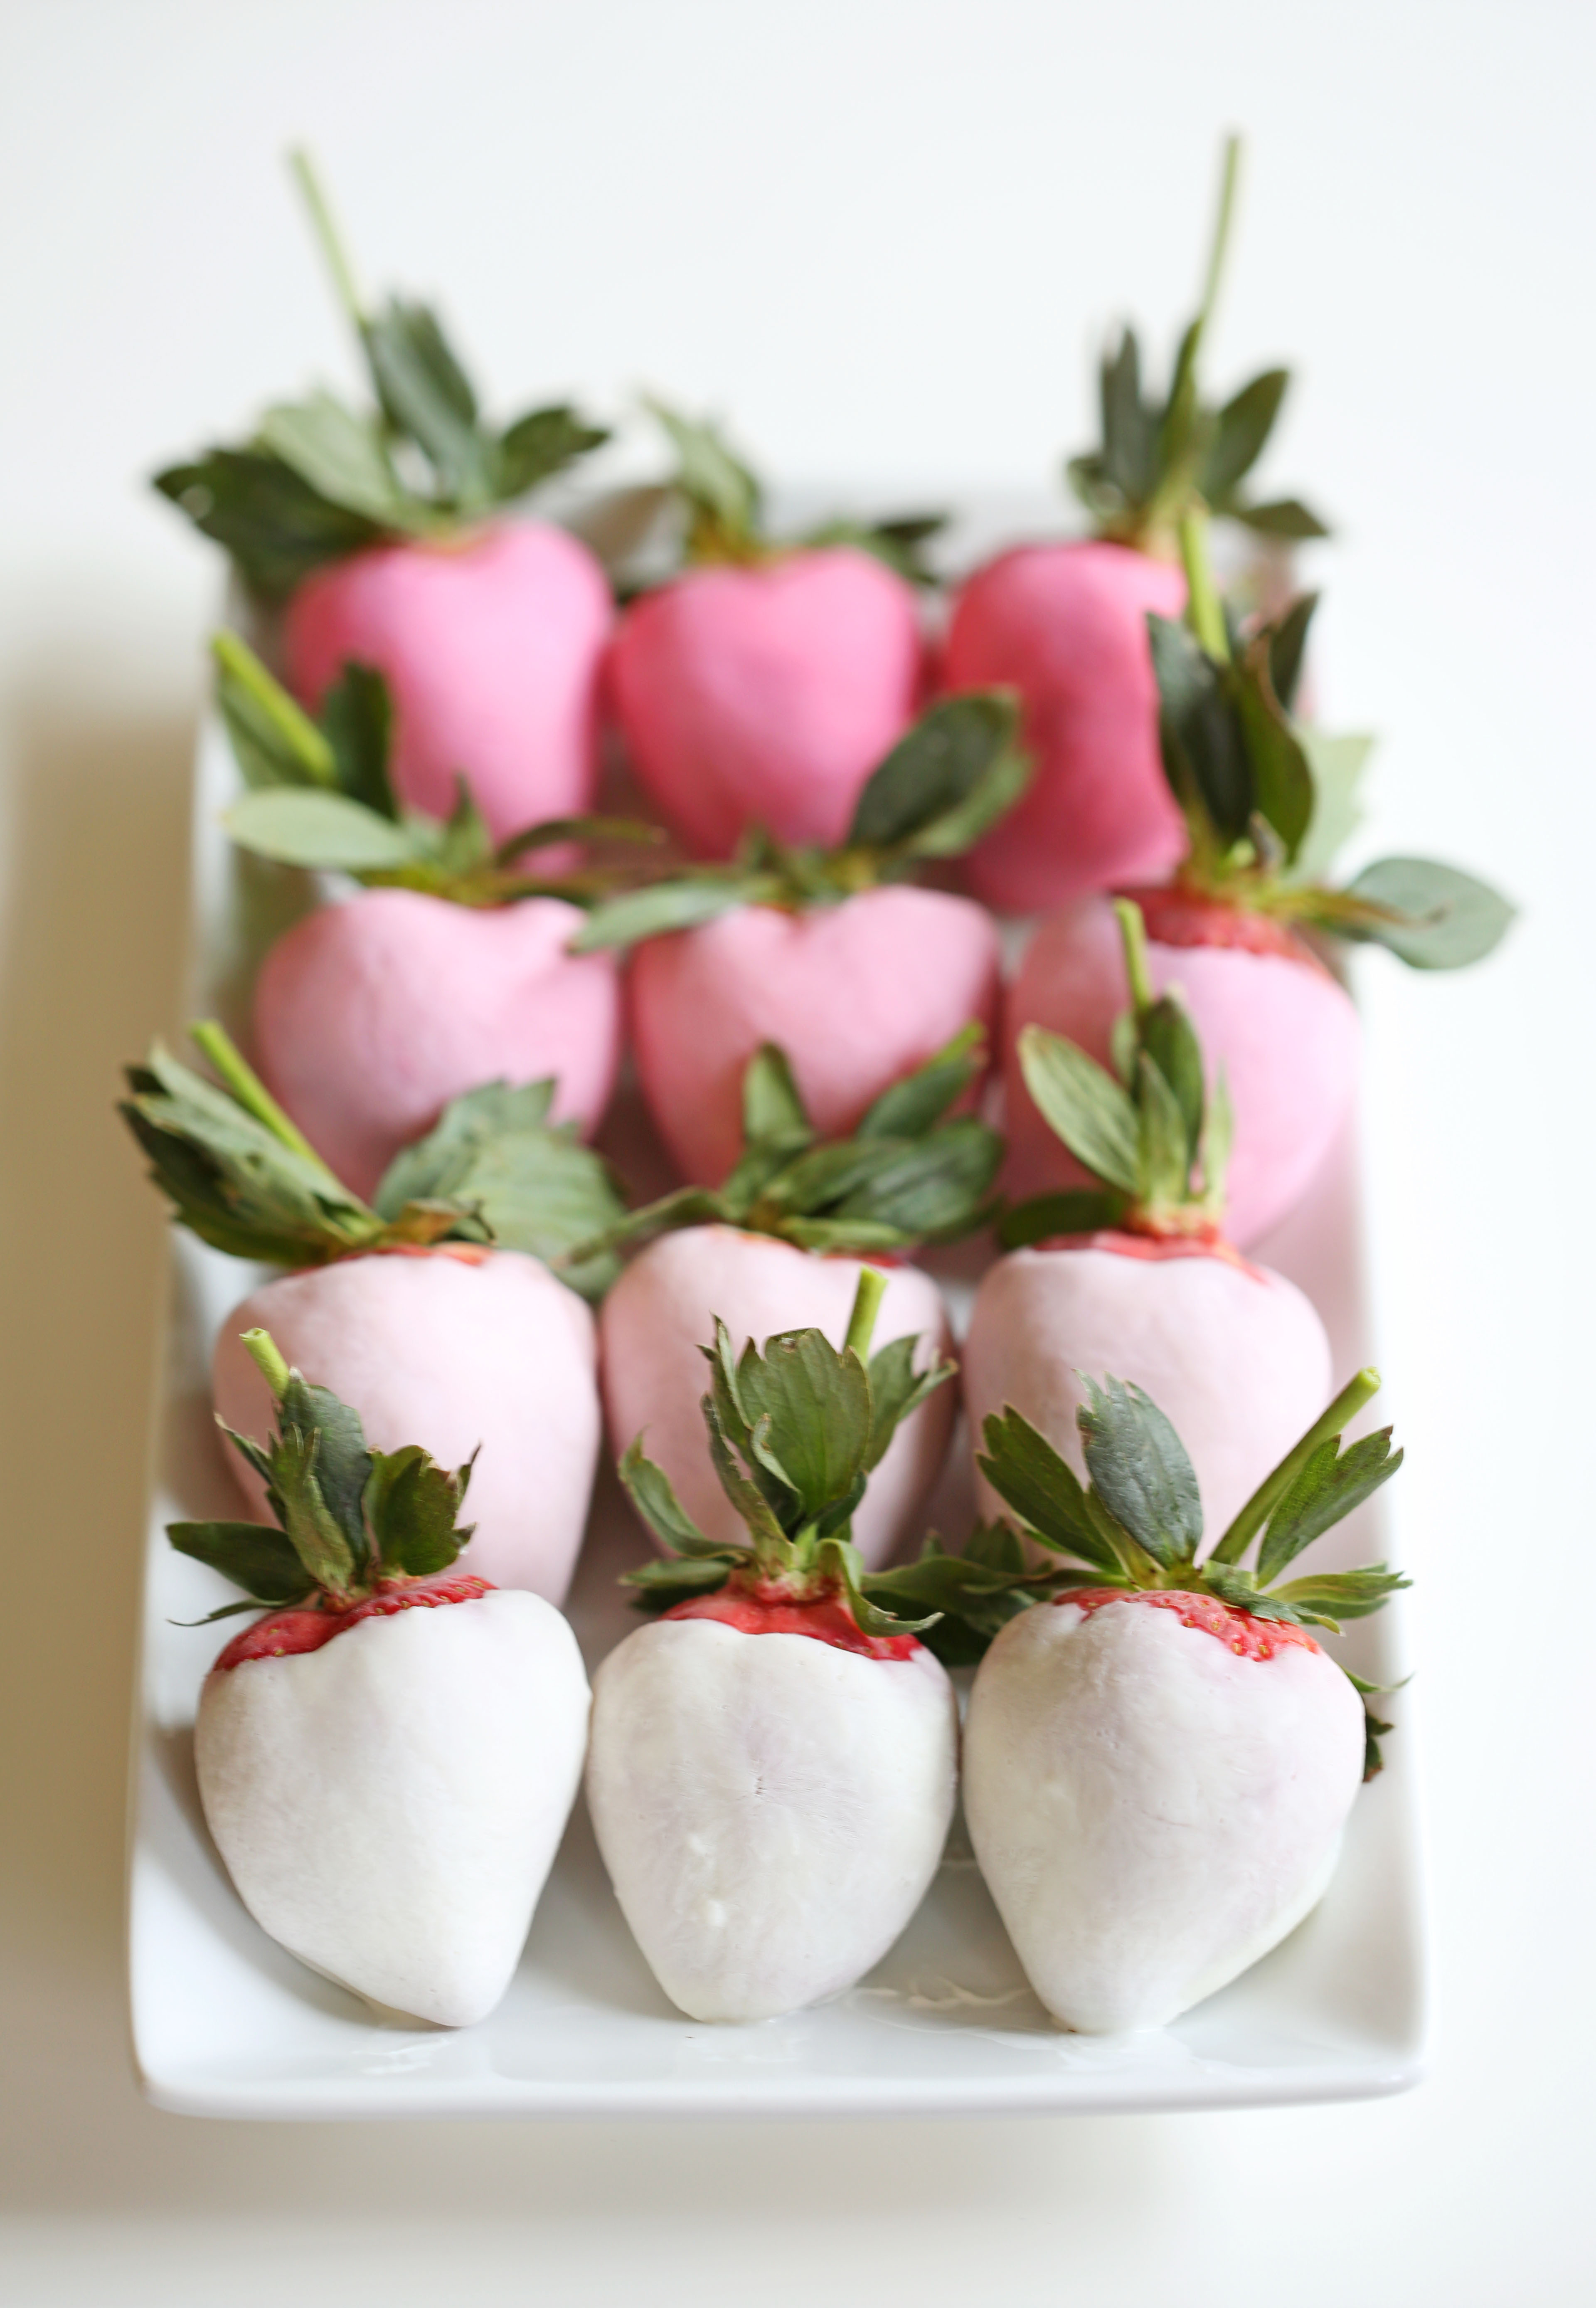 Yogurt dipped ombre strawberries eat yourself skinny yogurt dipped pink ombre strawberries for valentines day eat yourself skinny mightylinksfo